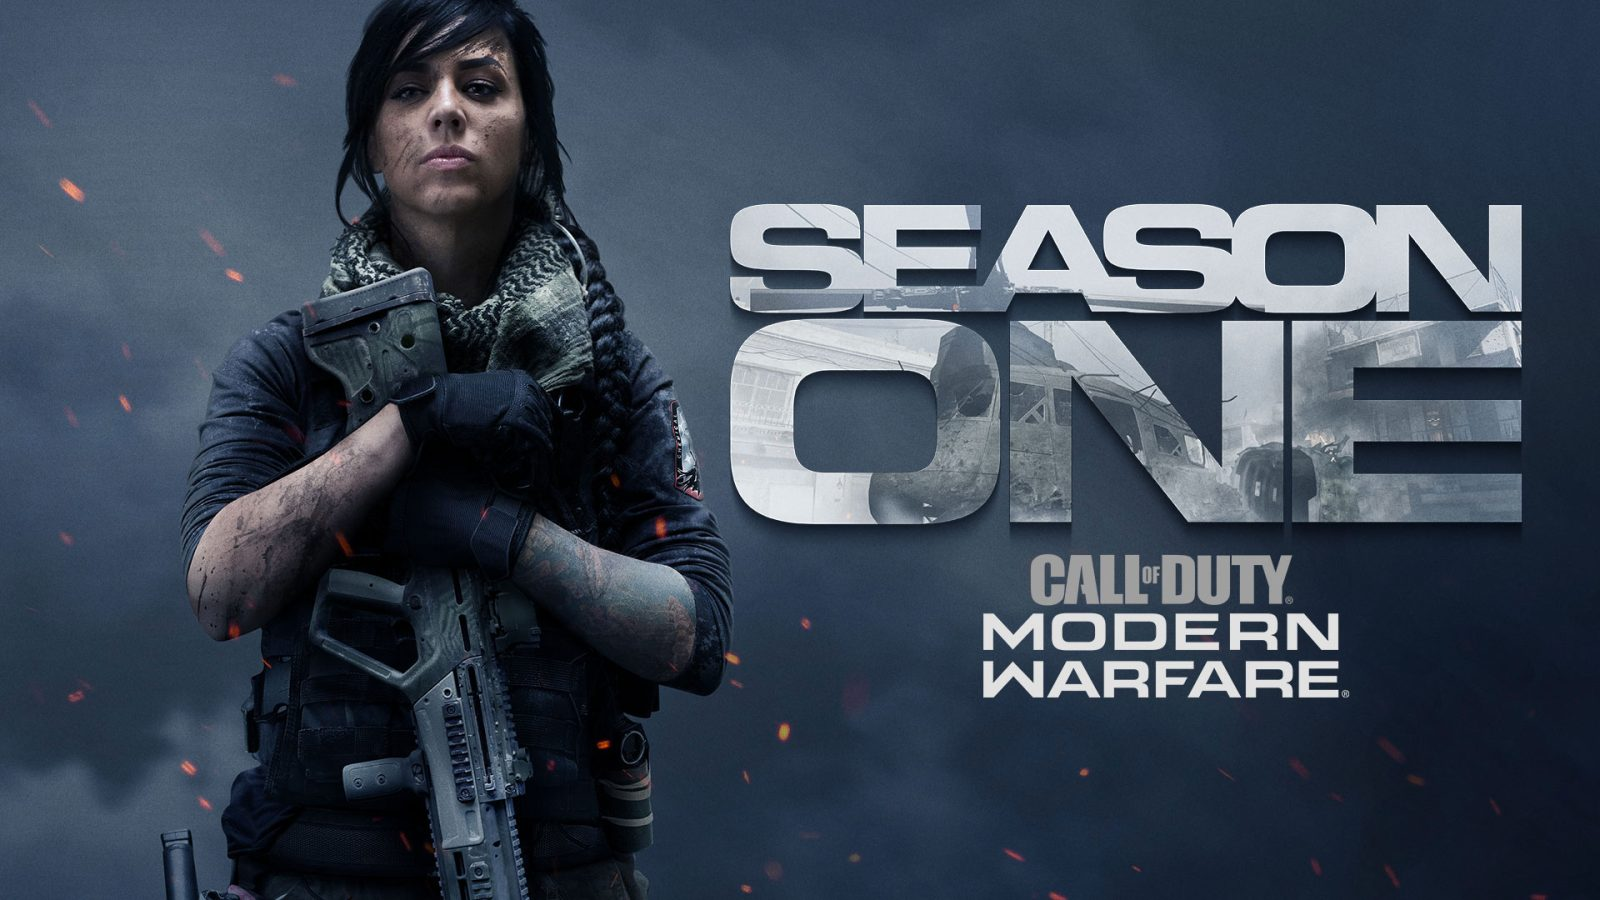 Call Of Duty Modern Warfare Season 1 Brings Great Updates 9to5toys